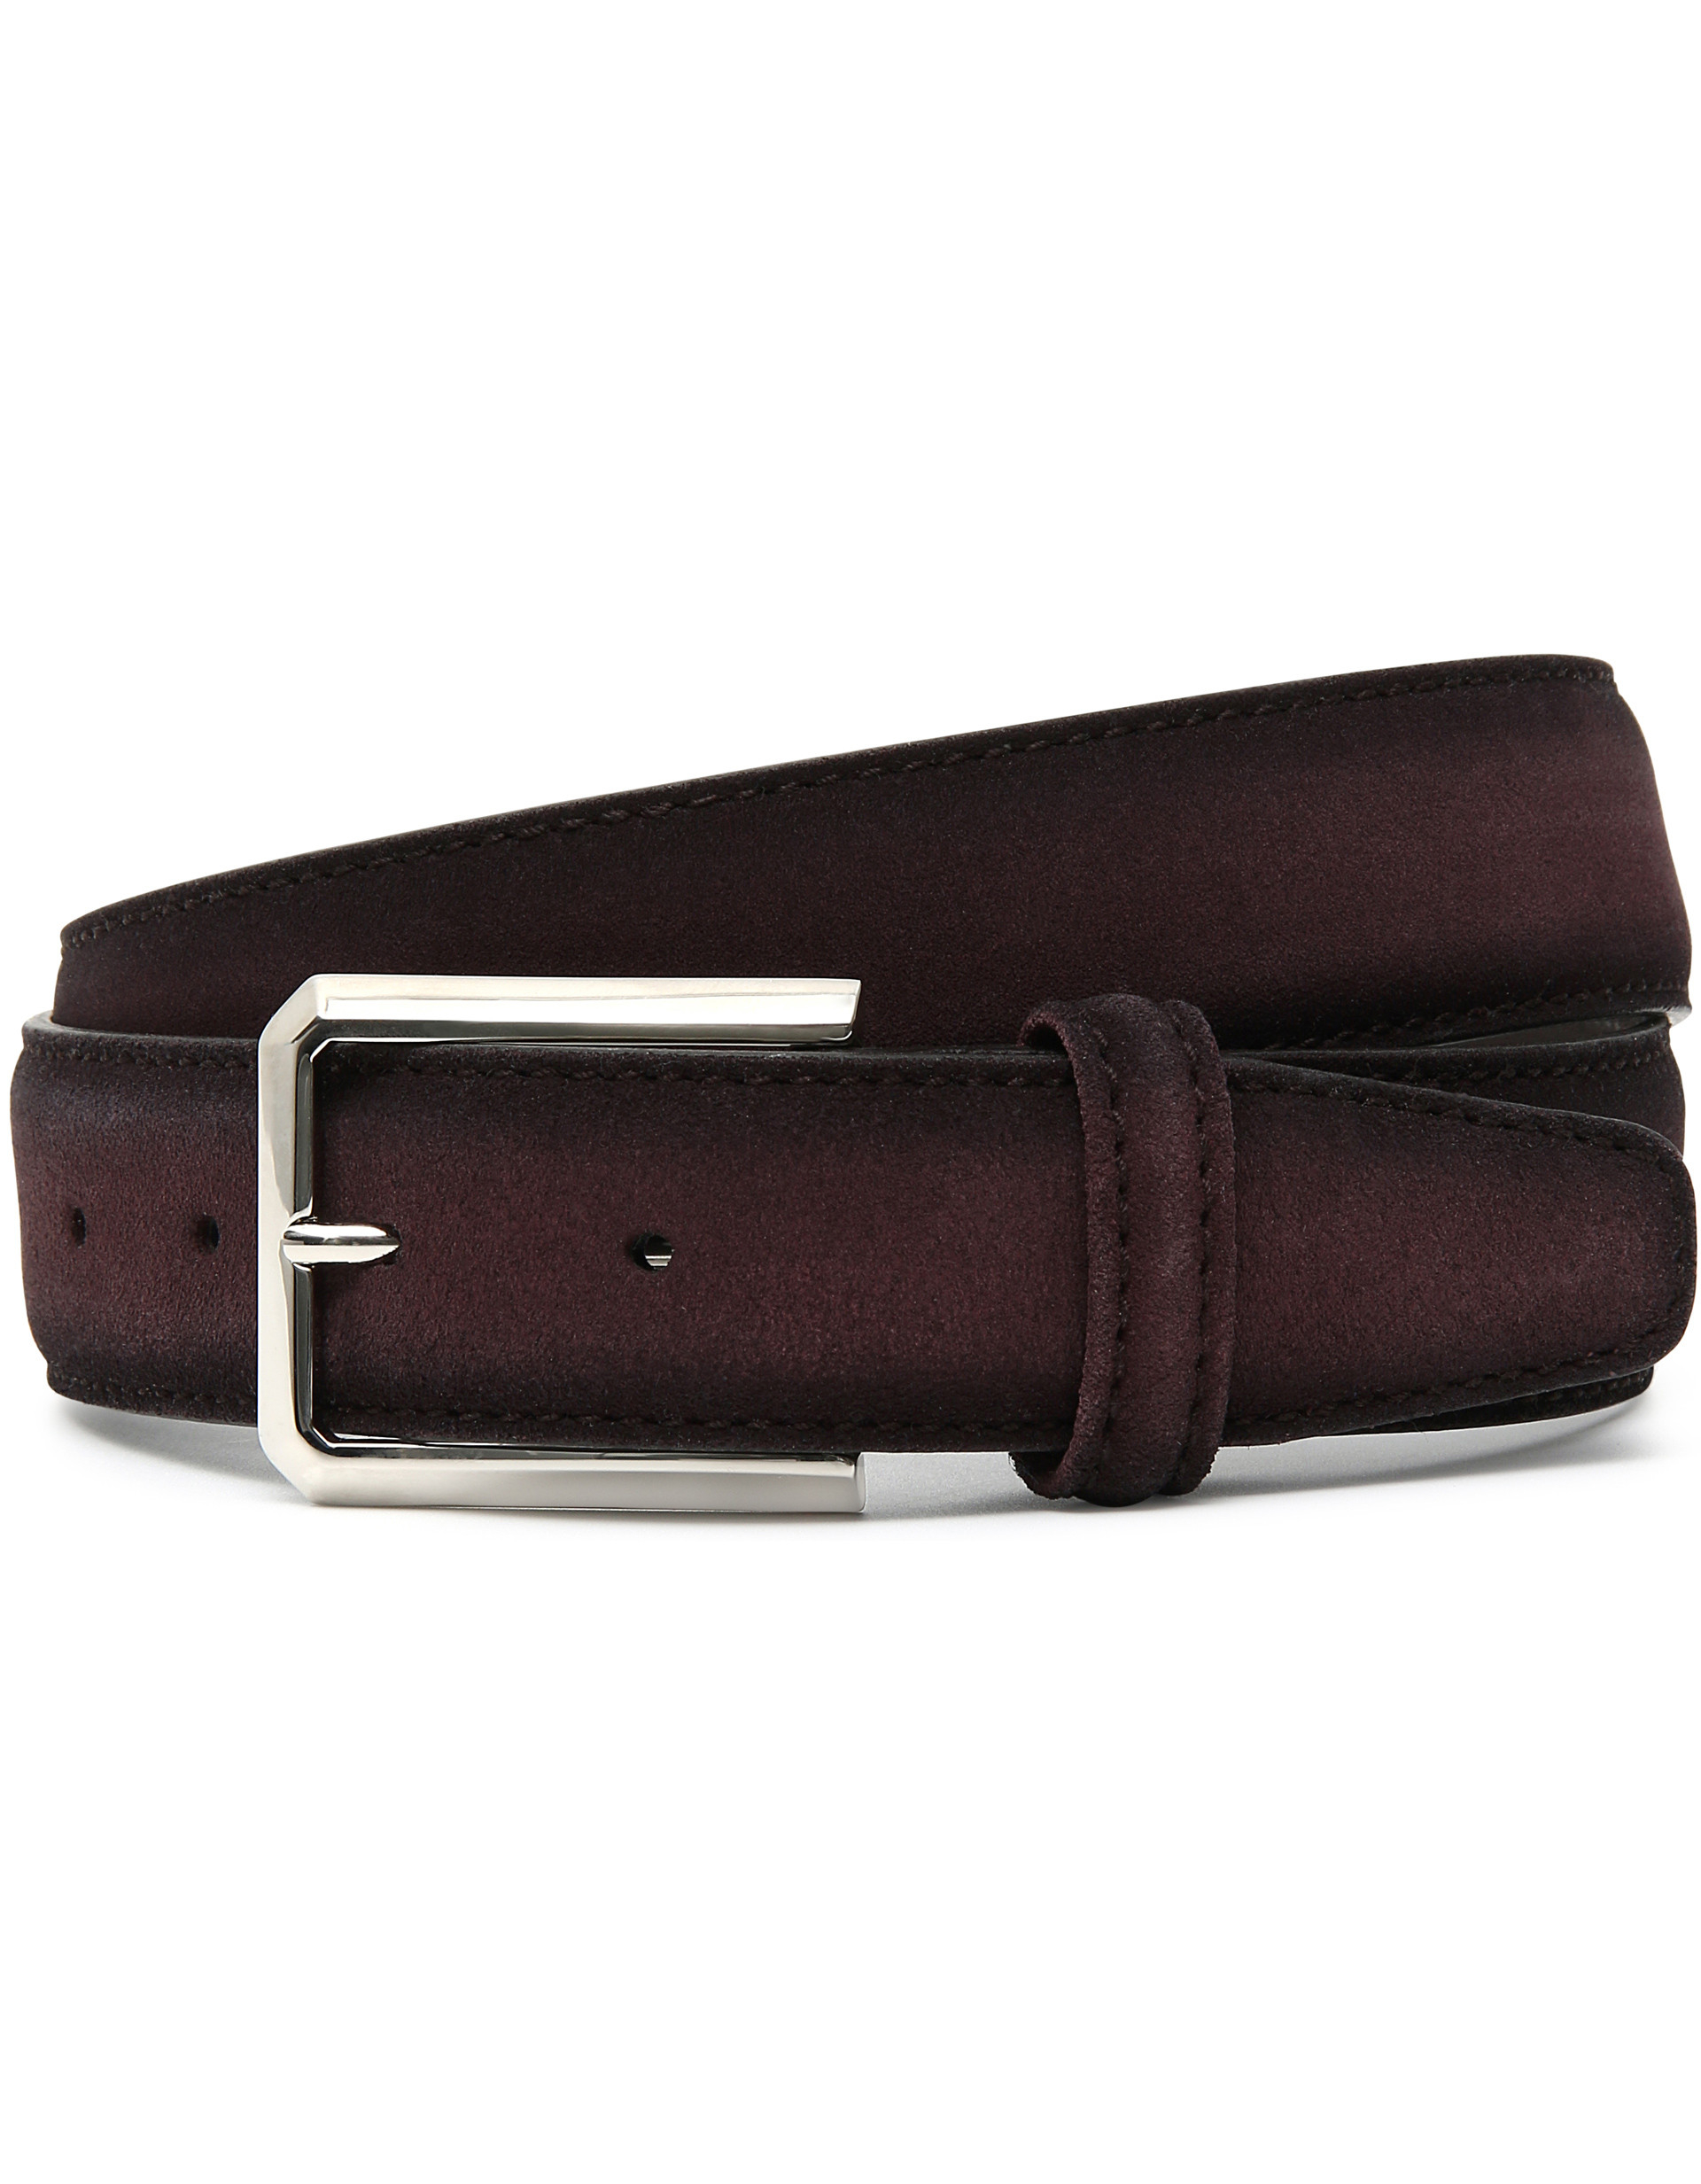 BORDEAUX SHADED SUEDE BELT WITH ARROWHEAD BUCKLE